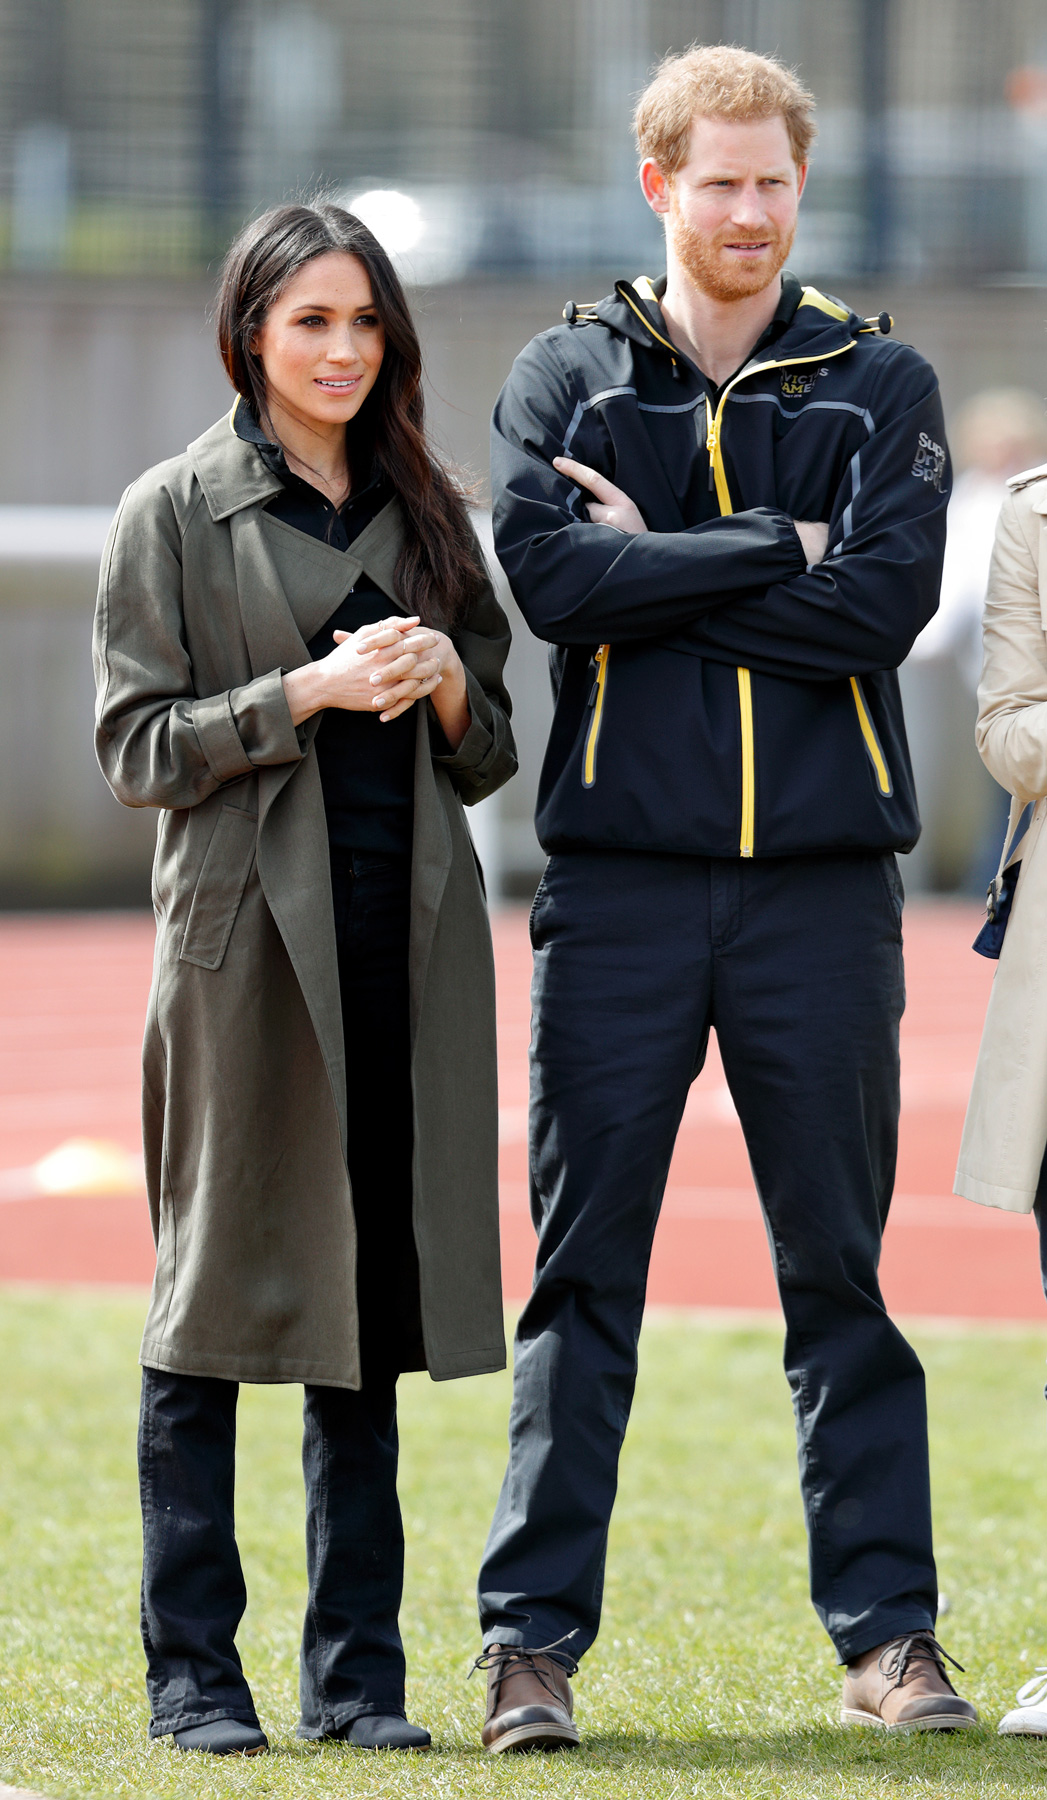 Prince Harry And Meghan Markle at Trials for the Invictus Games